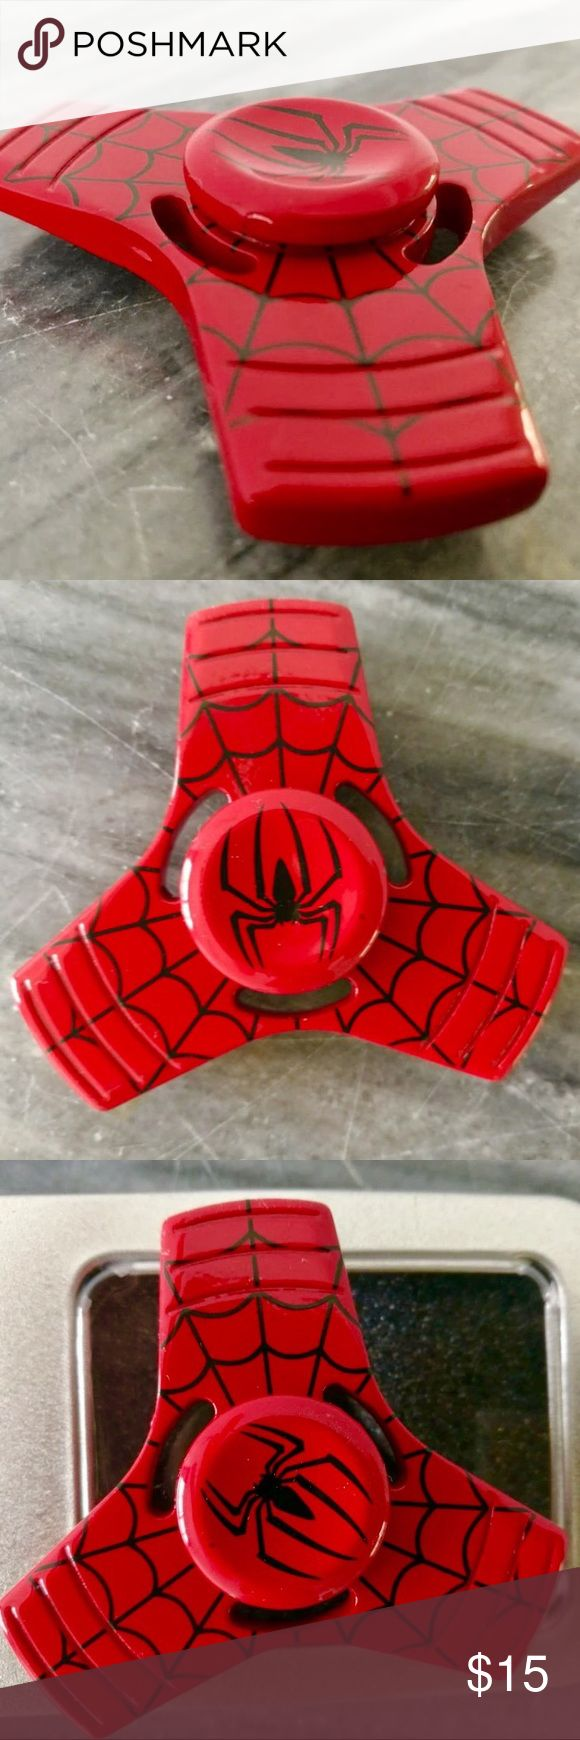 Sy tools custom producing hand spinner torqbar alec bass shells 50 66 - Red Spider Man Metal Alloy 3 Wing Fidget Spinner Brand New Comes In Case Accessories